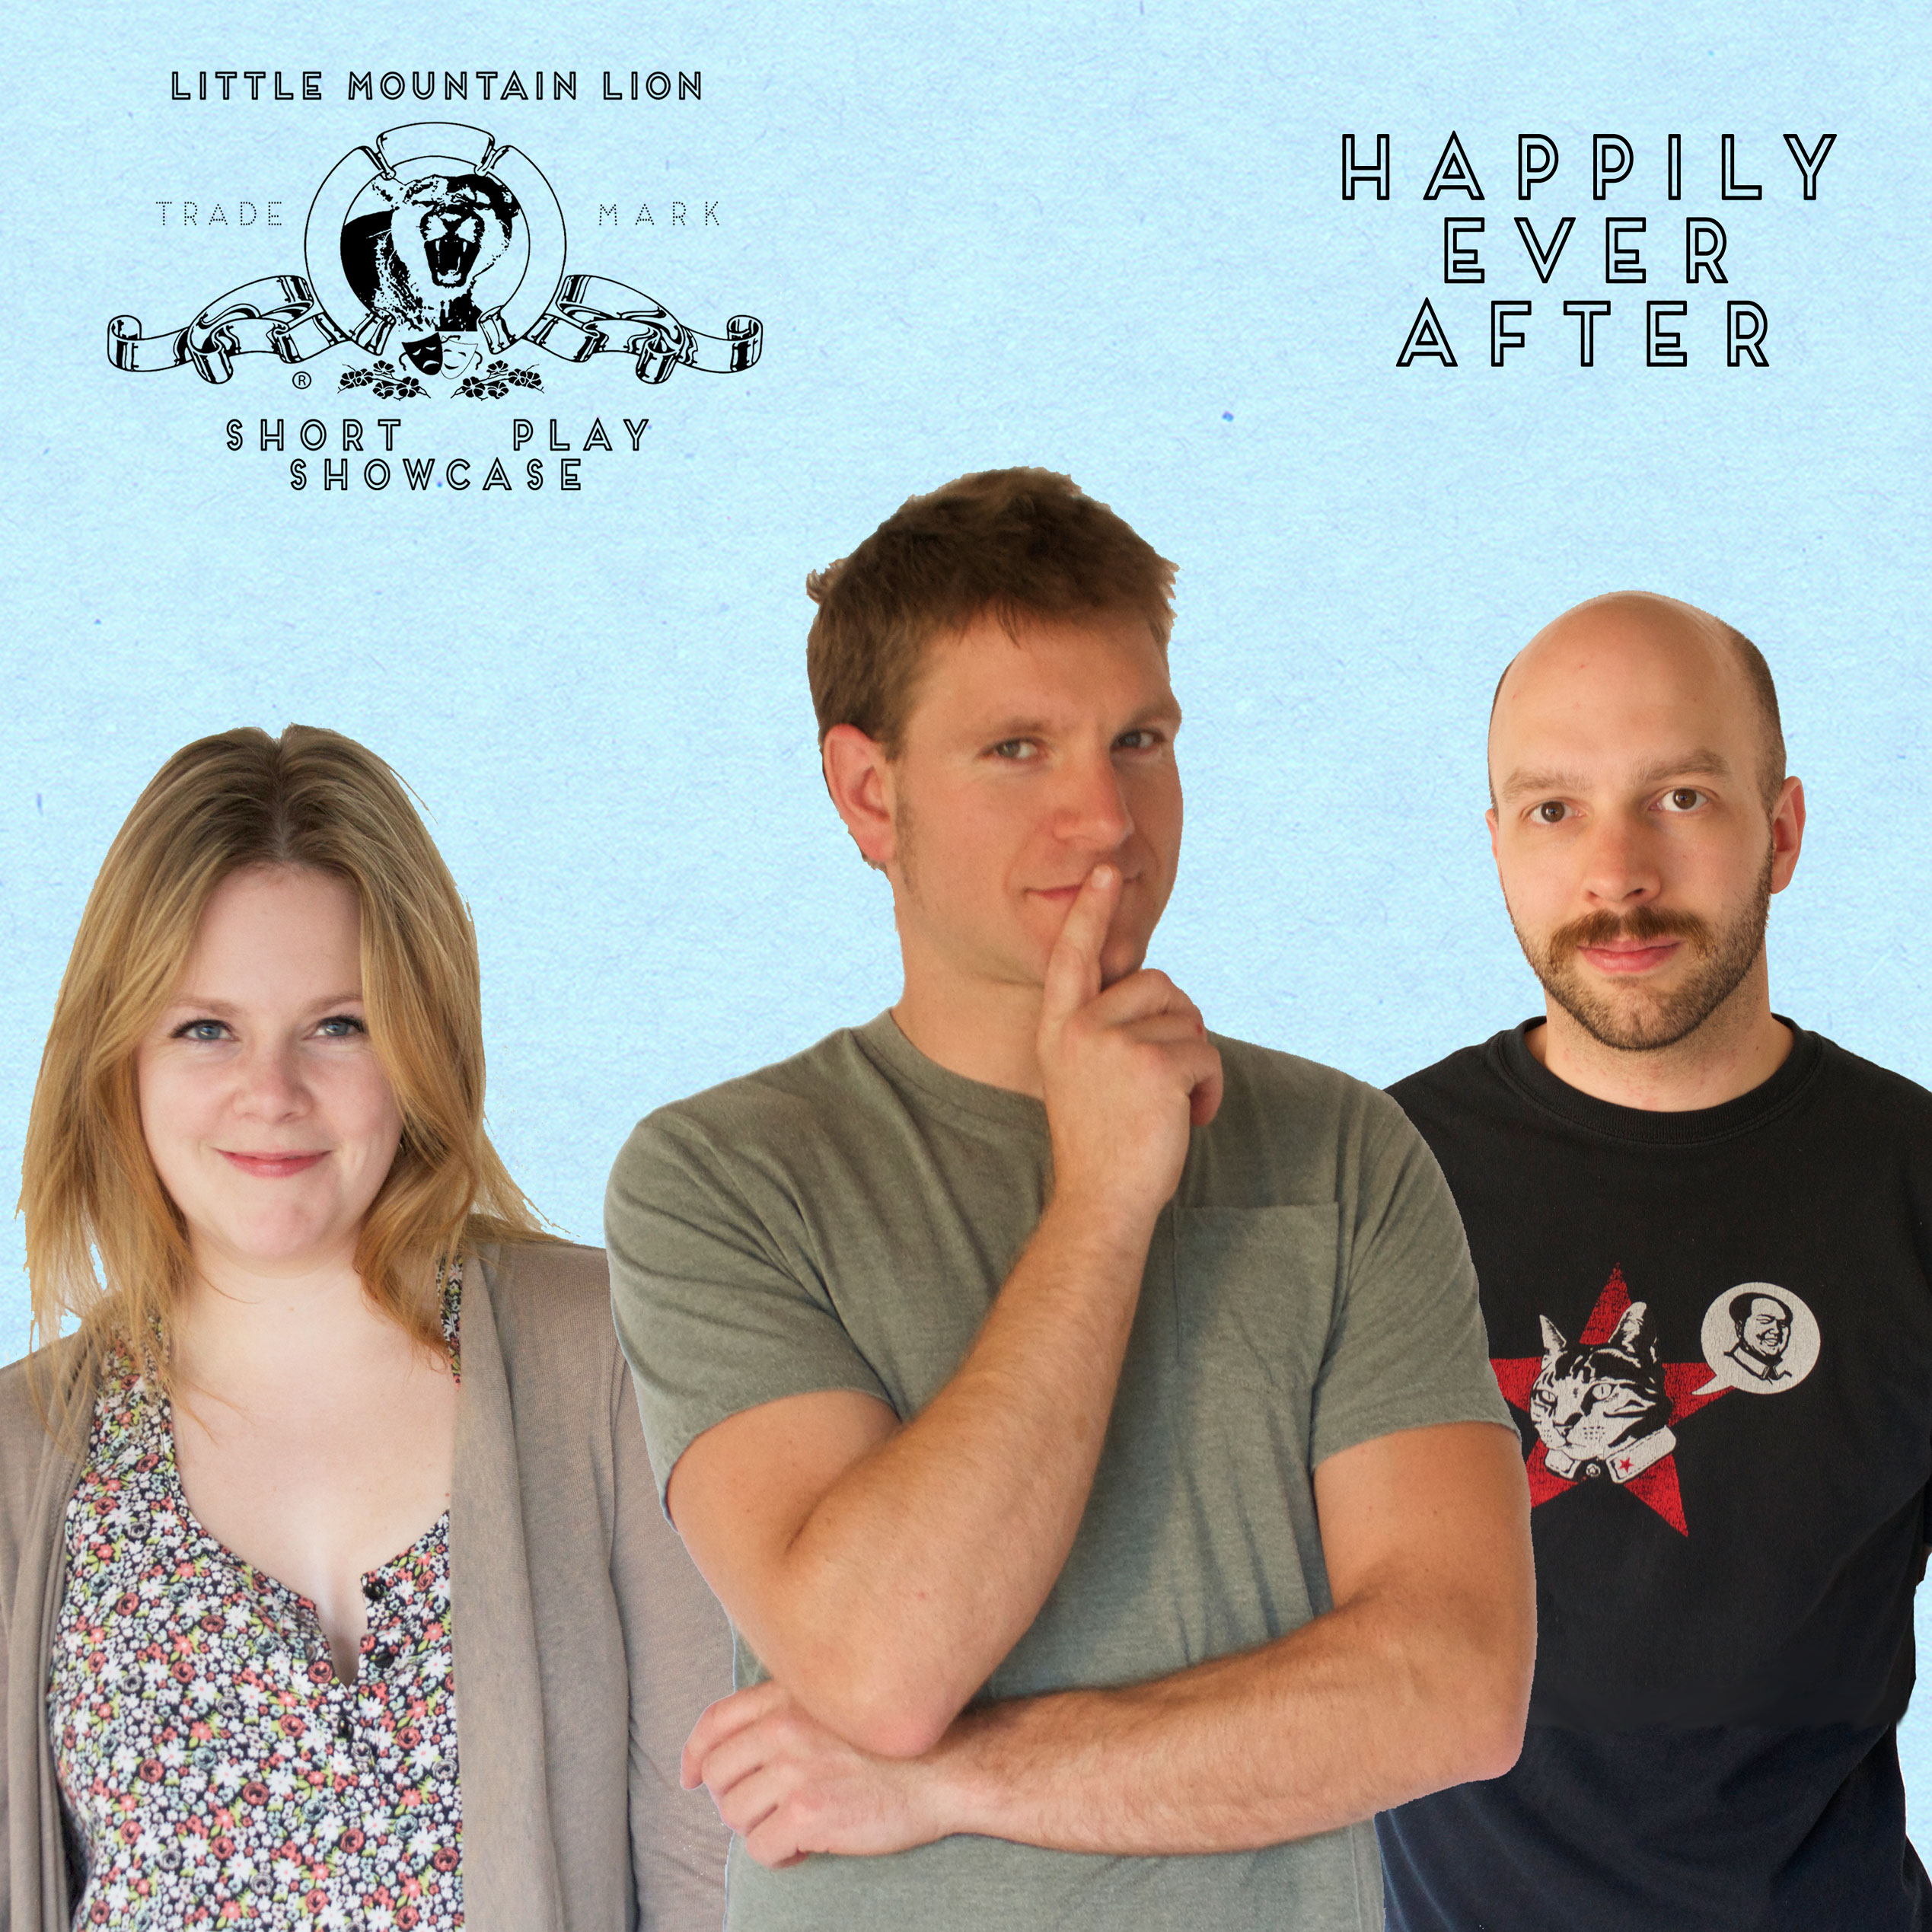 Meet the Cast of Happily Ever After – LML Short Play Showcase